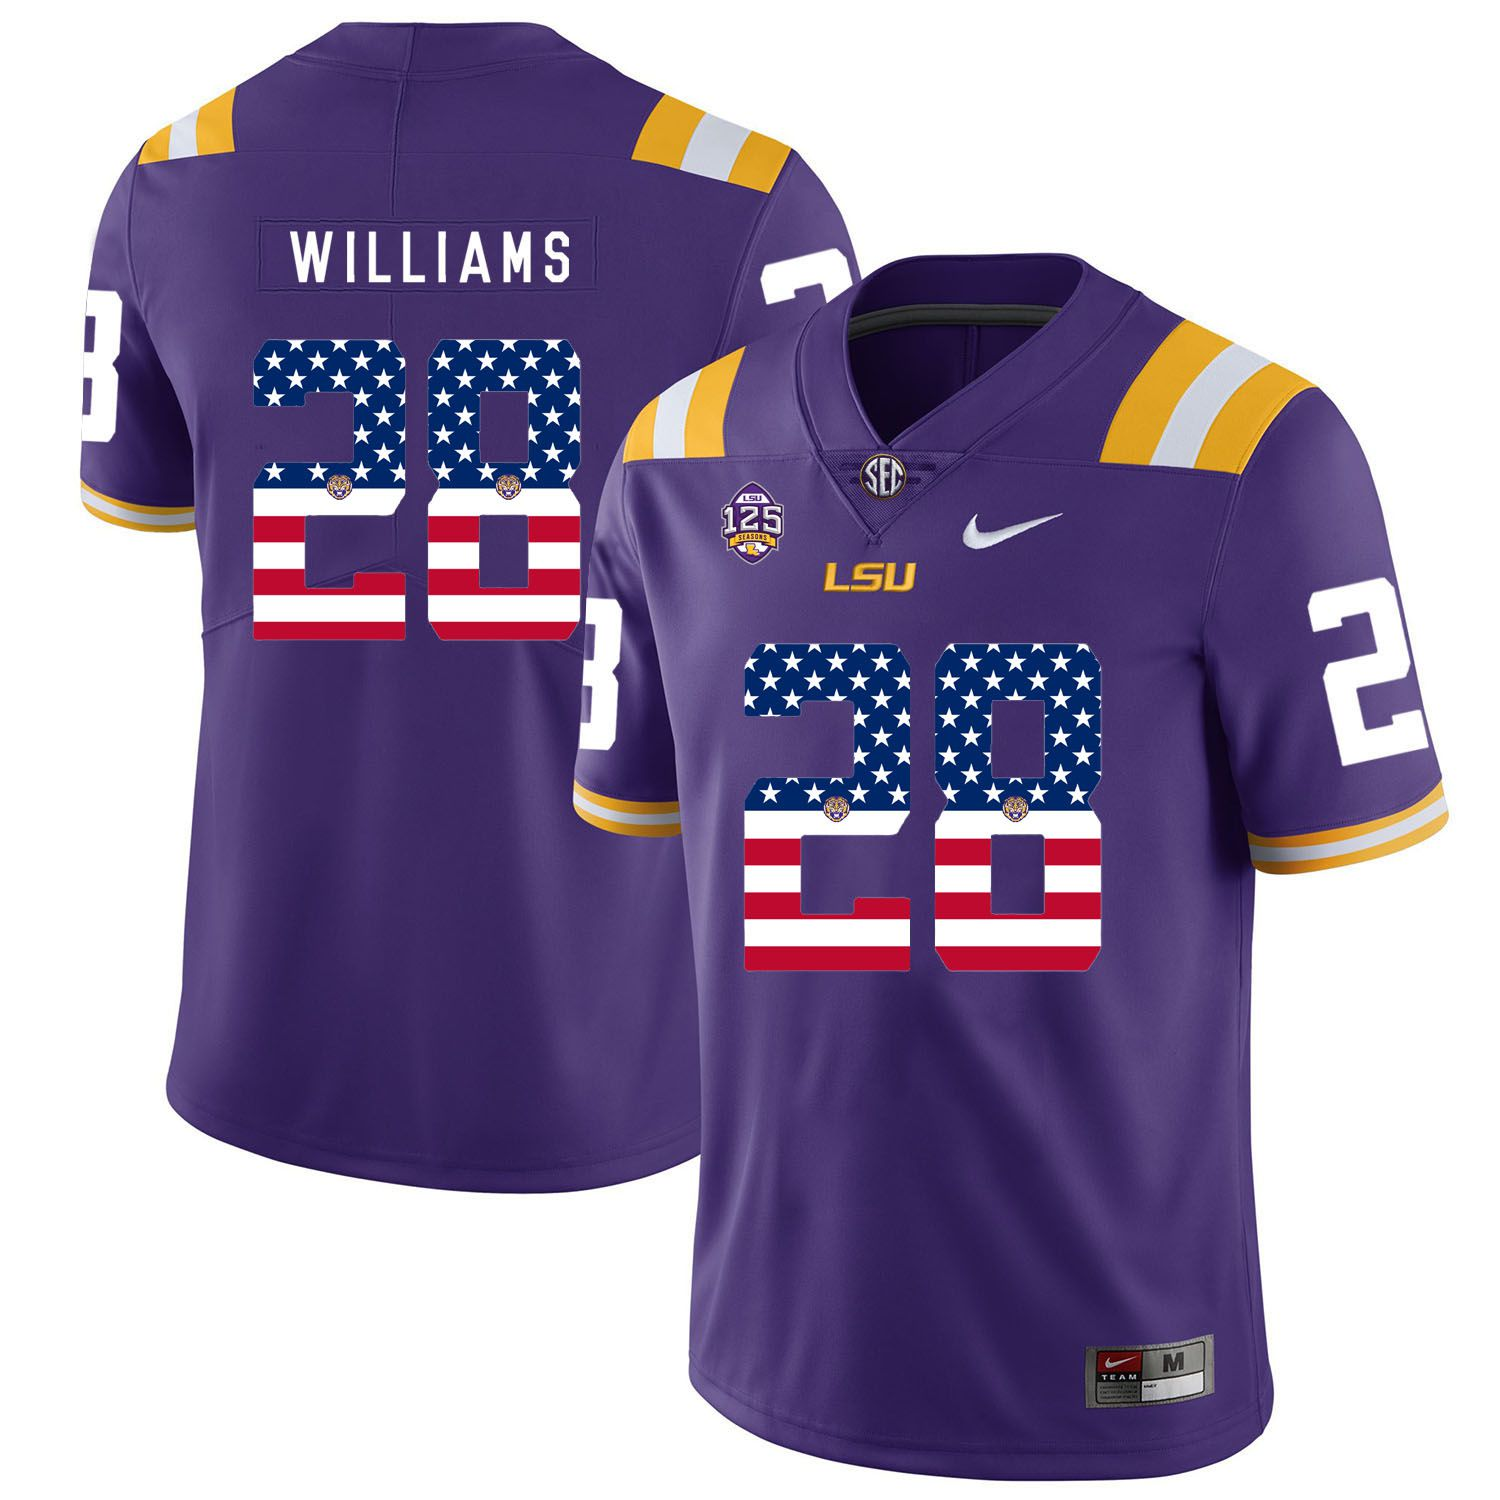 Men LSU Tigers 28 Williams Purple Flag Customized NCAA Jerseys